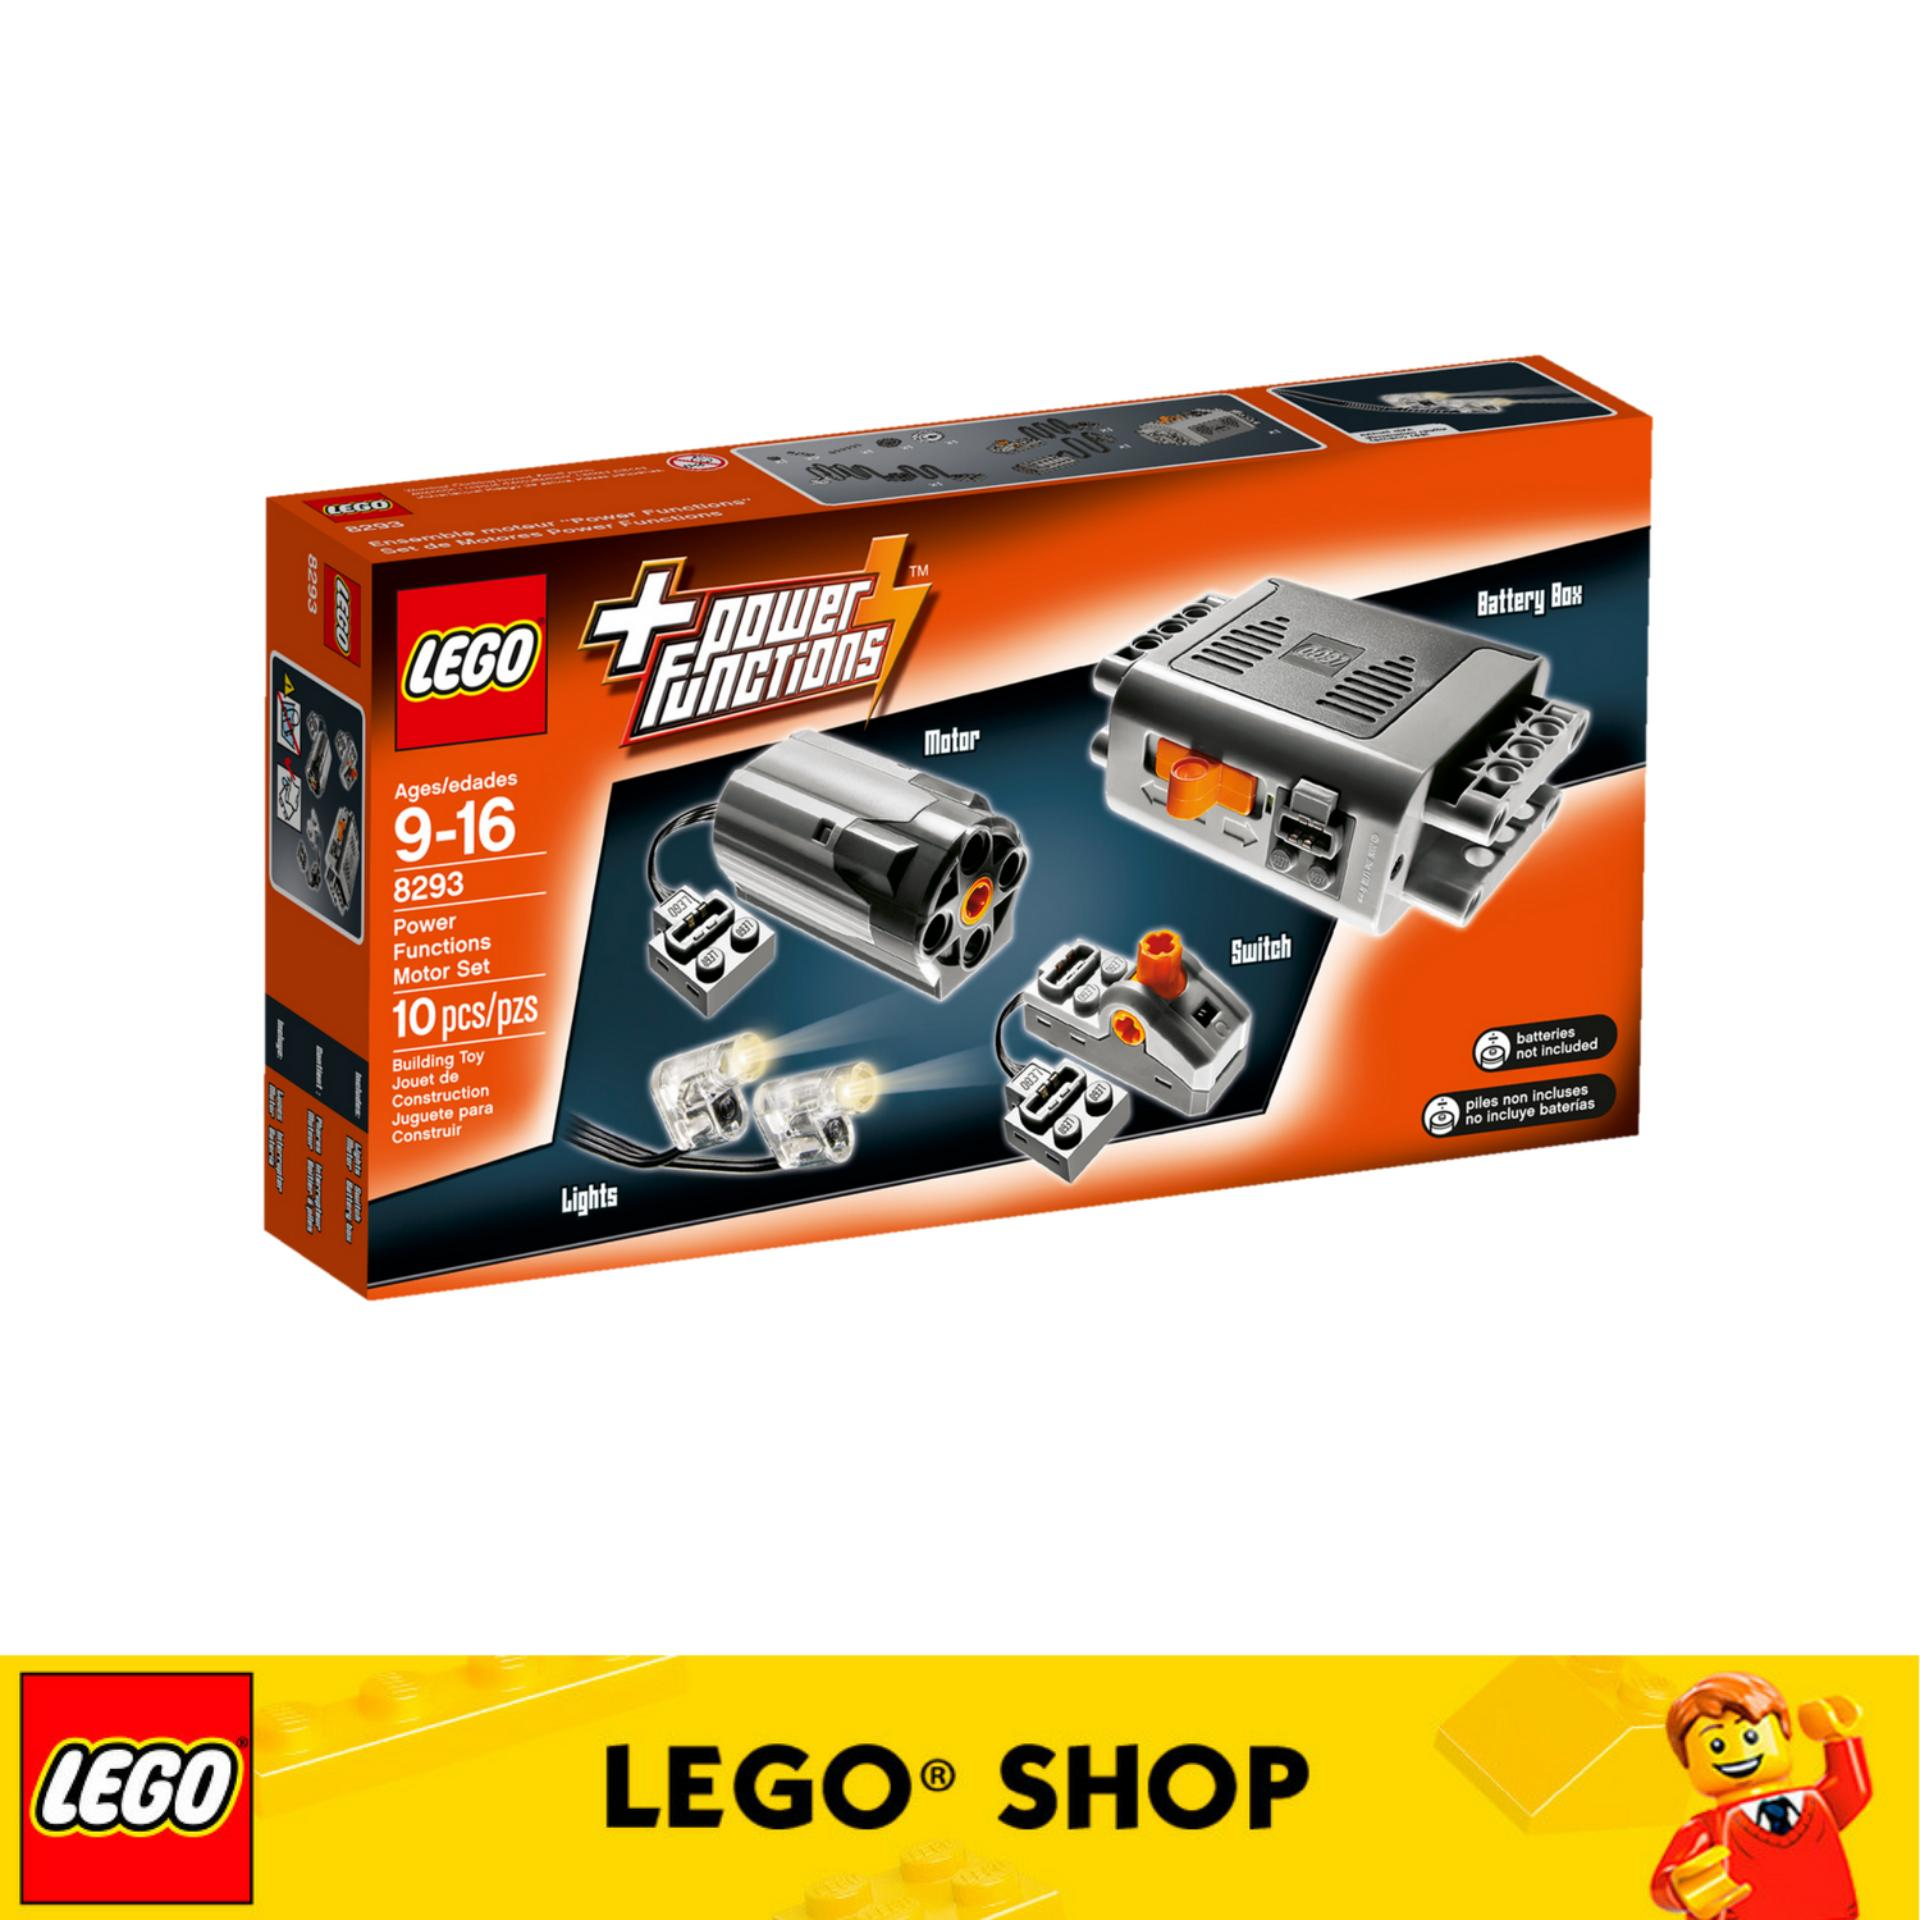 How To Get Lego® Technic Power Functions Motor Set 8293